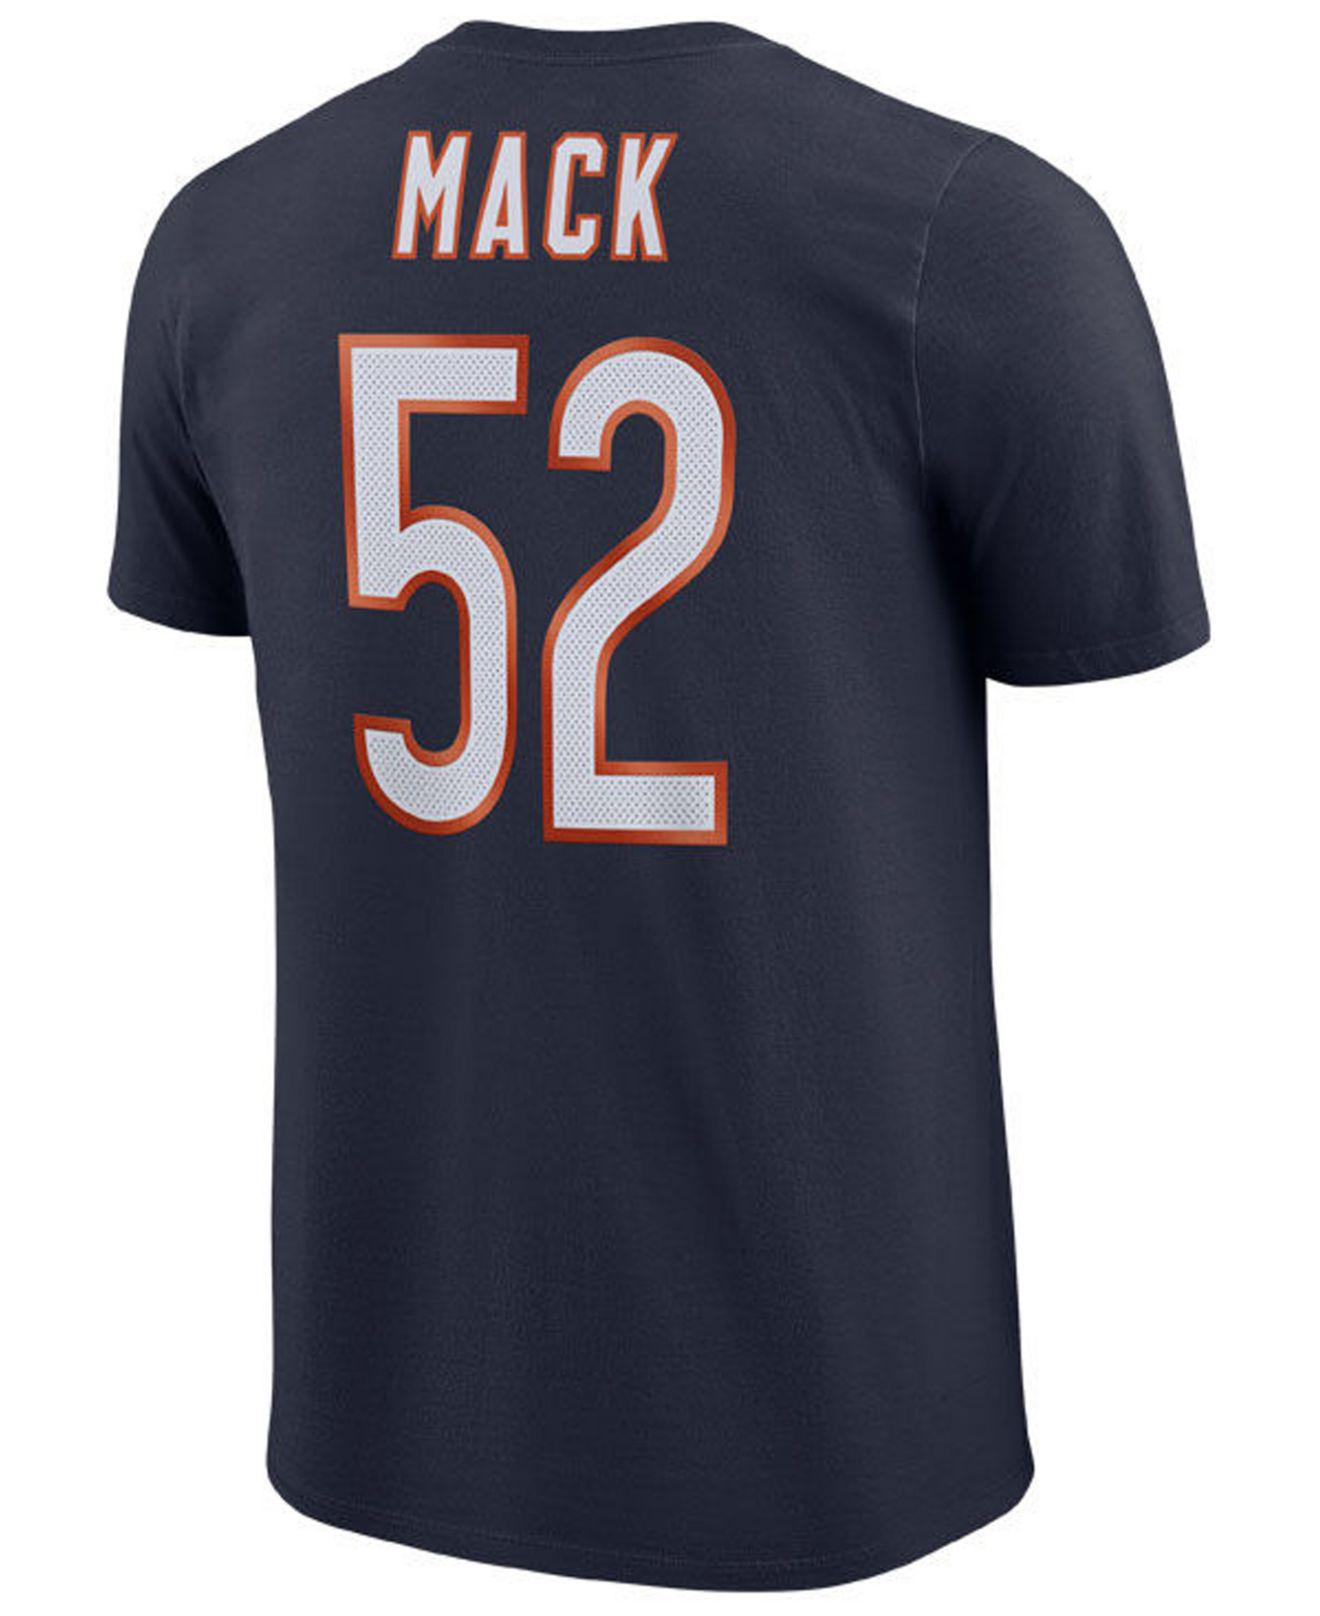 2263c1b7882 Nike - Blue Khalil Mack Chicago Bears Pride Name And Number Wordmark T-shirt  for. View fullscreen